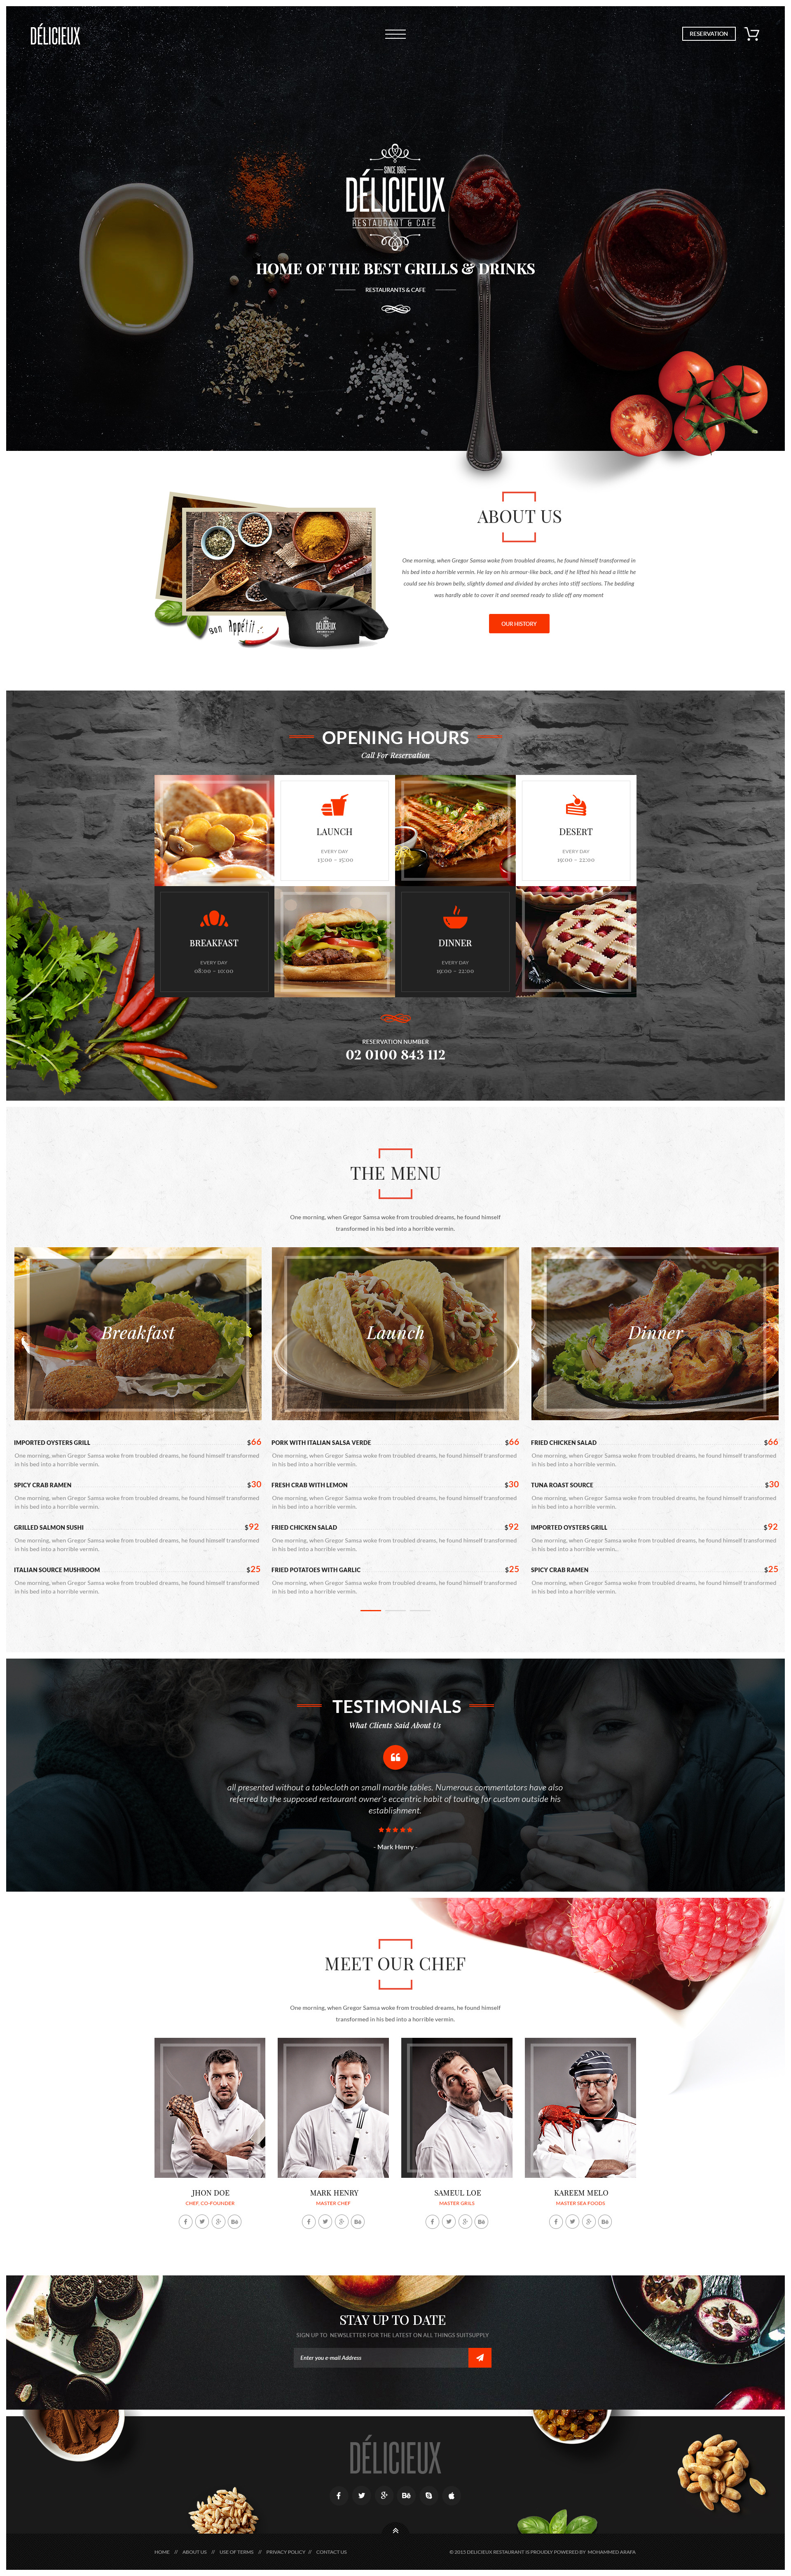 delicieux - exquisite restaurant psd templatecreative-wp